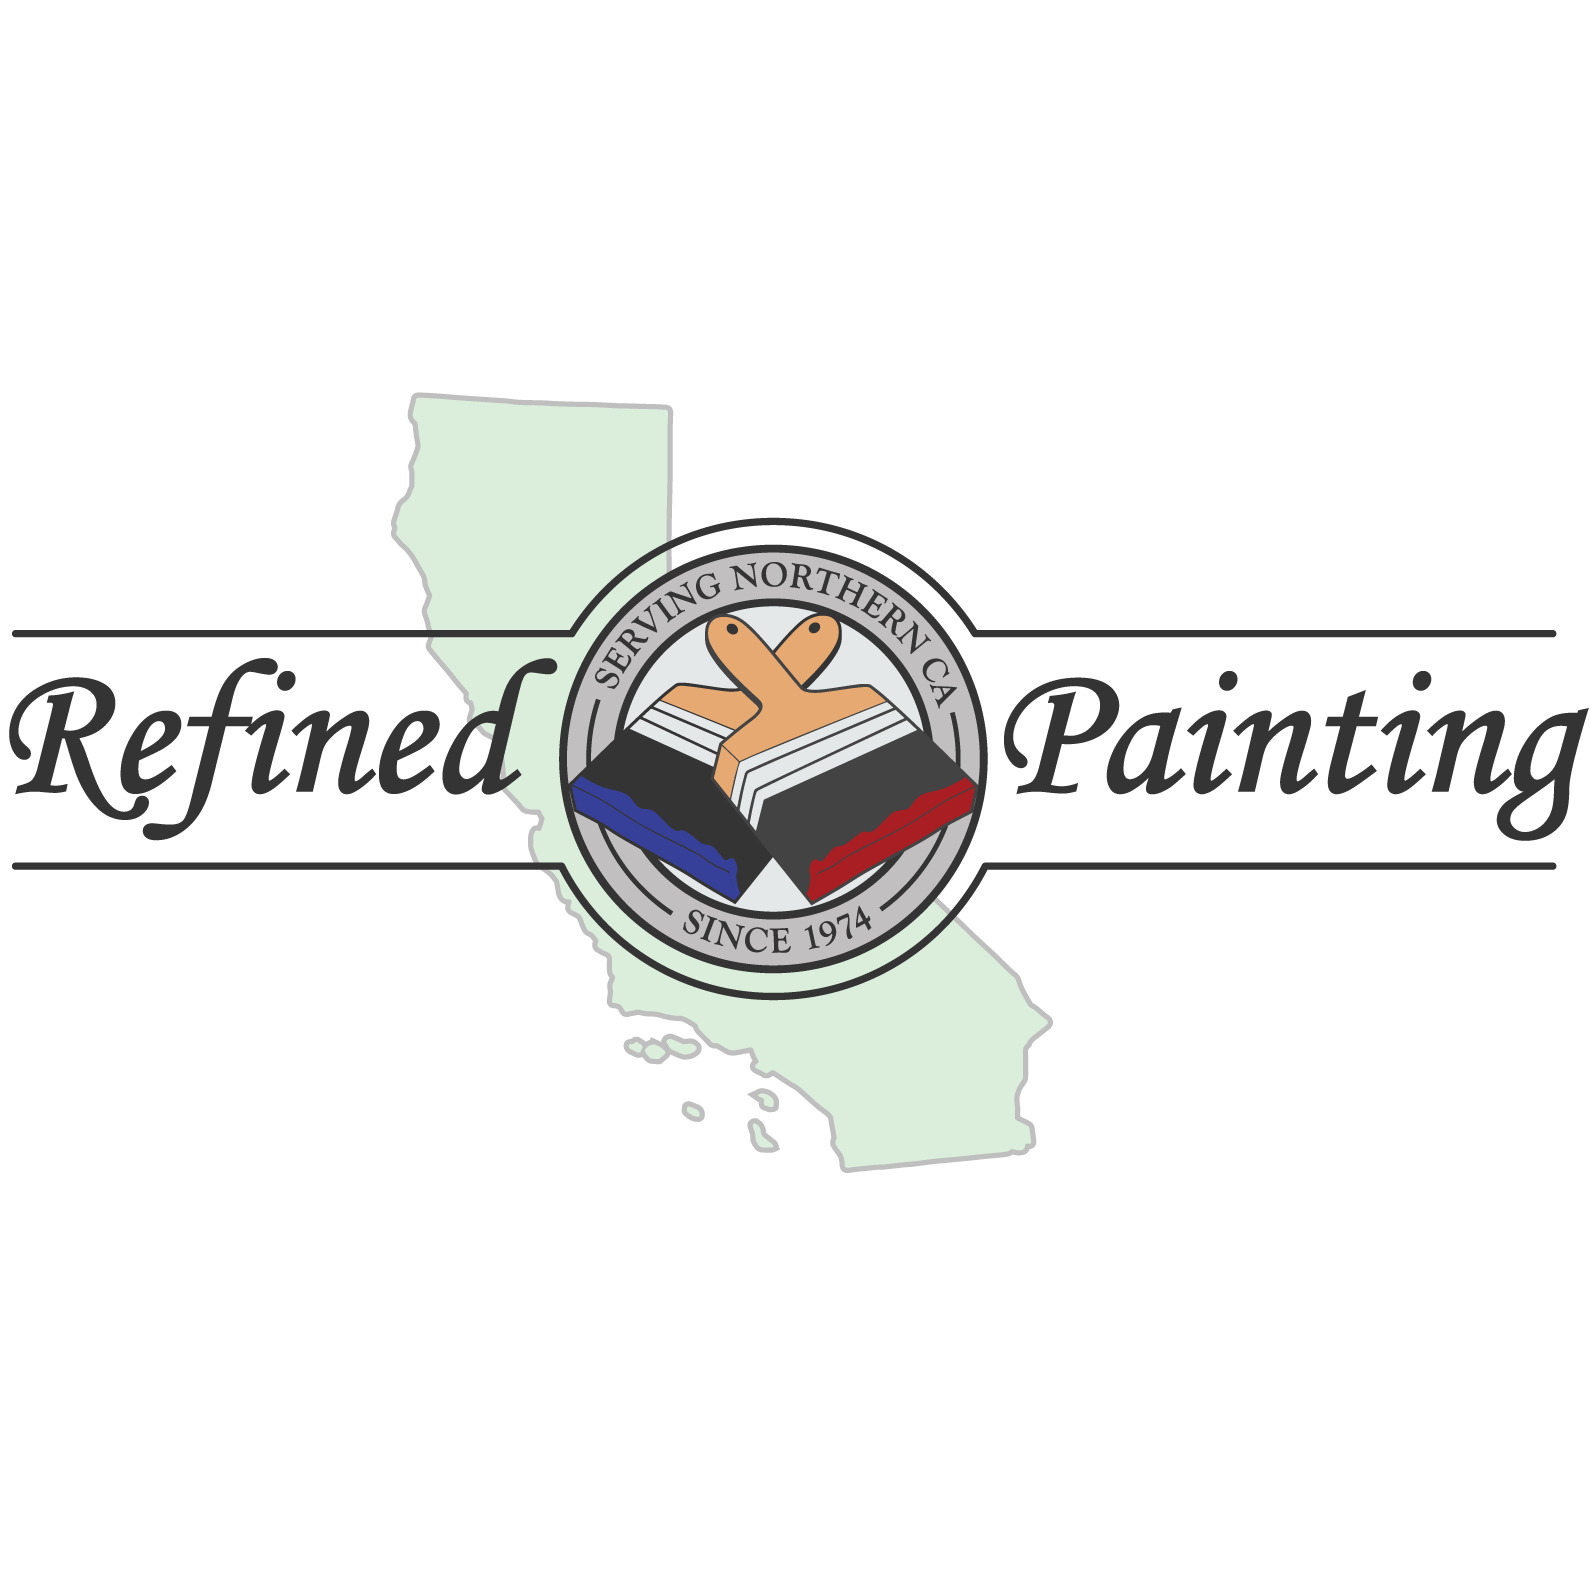 Refined Painting & Decorating